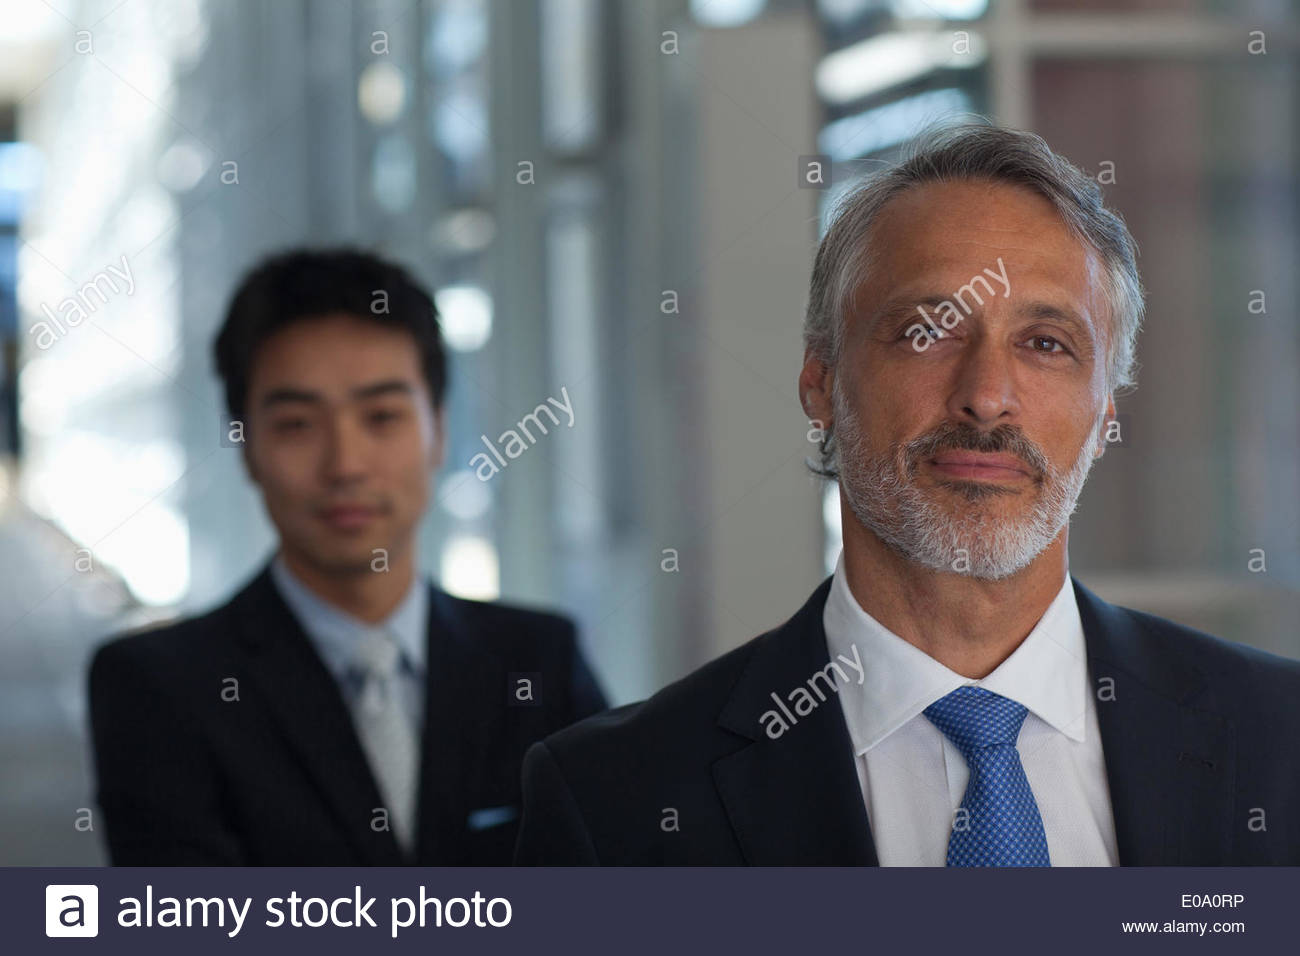 Portrait of smiling businessman in hall moderne Photo Stock